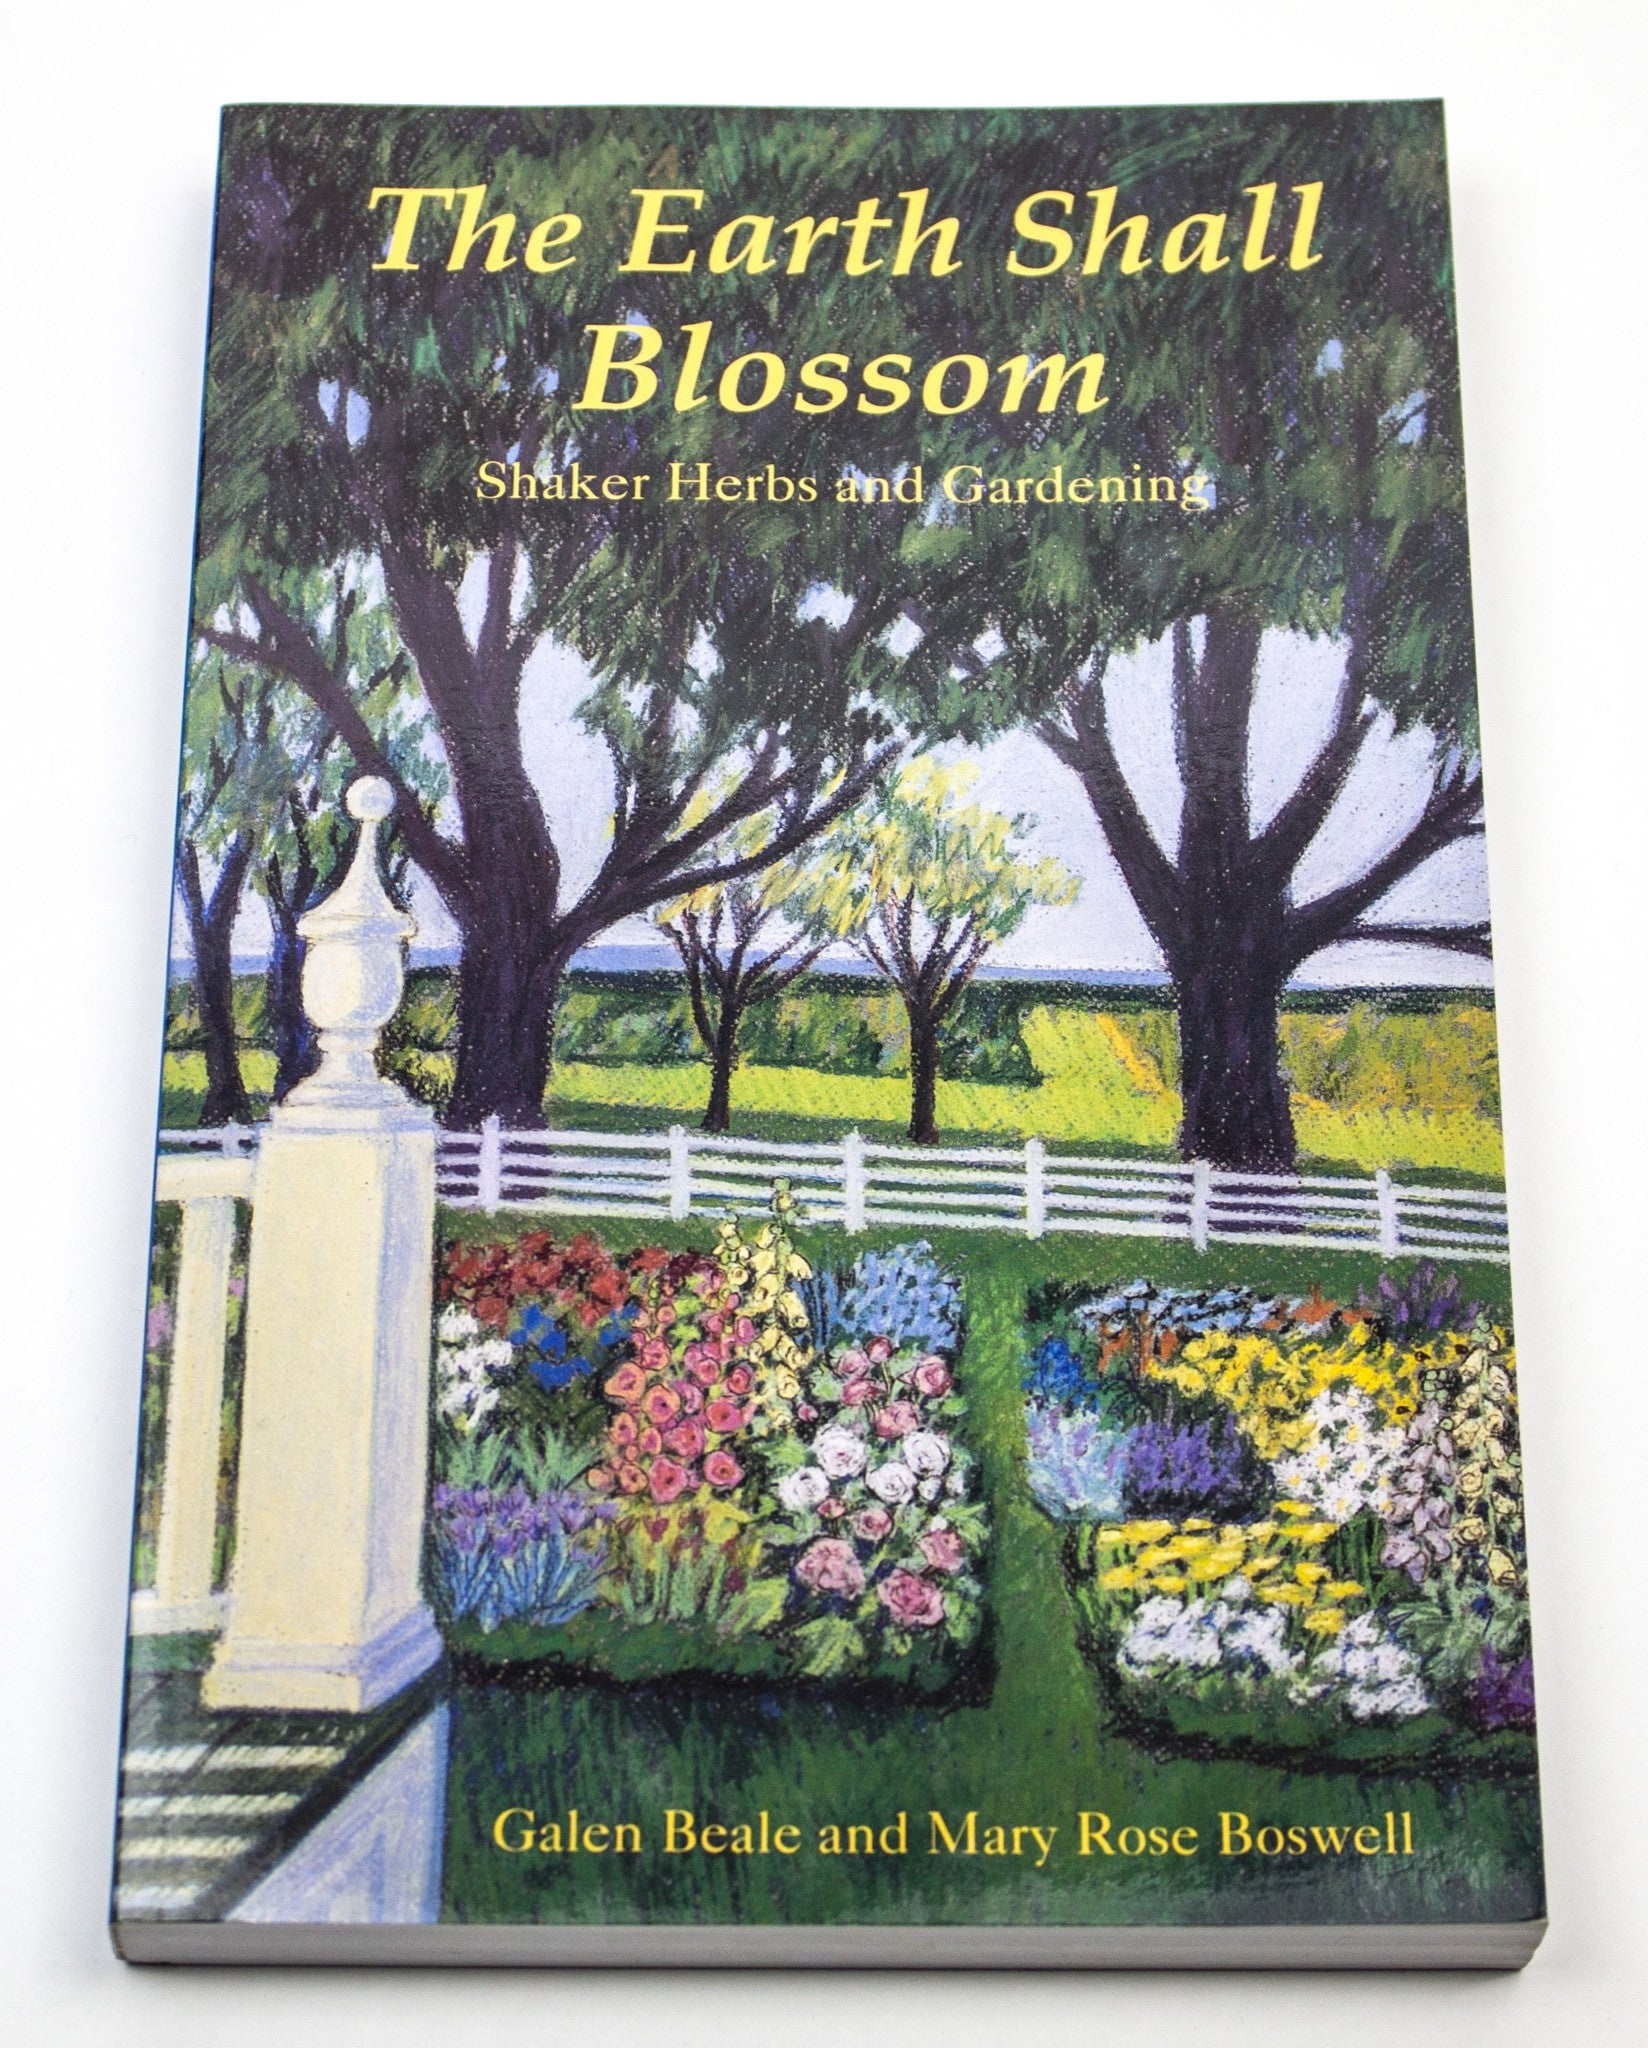 The Earth Shall Blossom: Shaker Herbs and Gardening